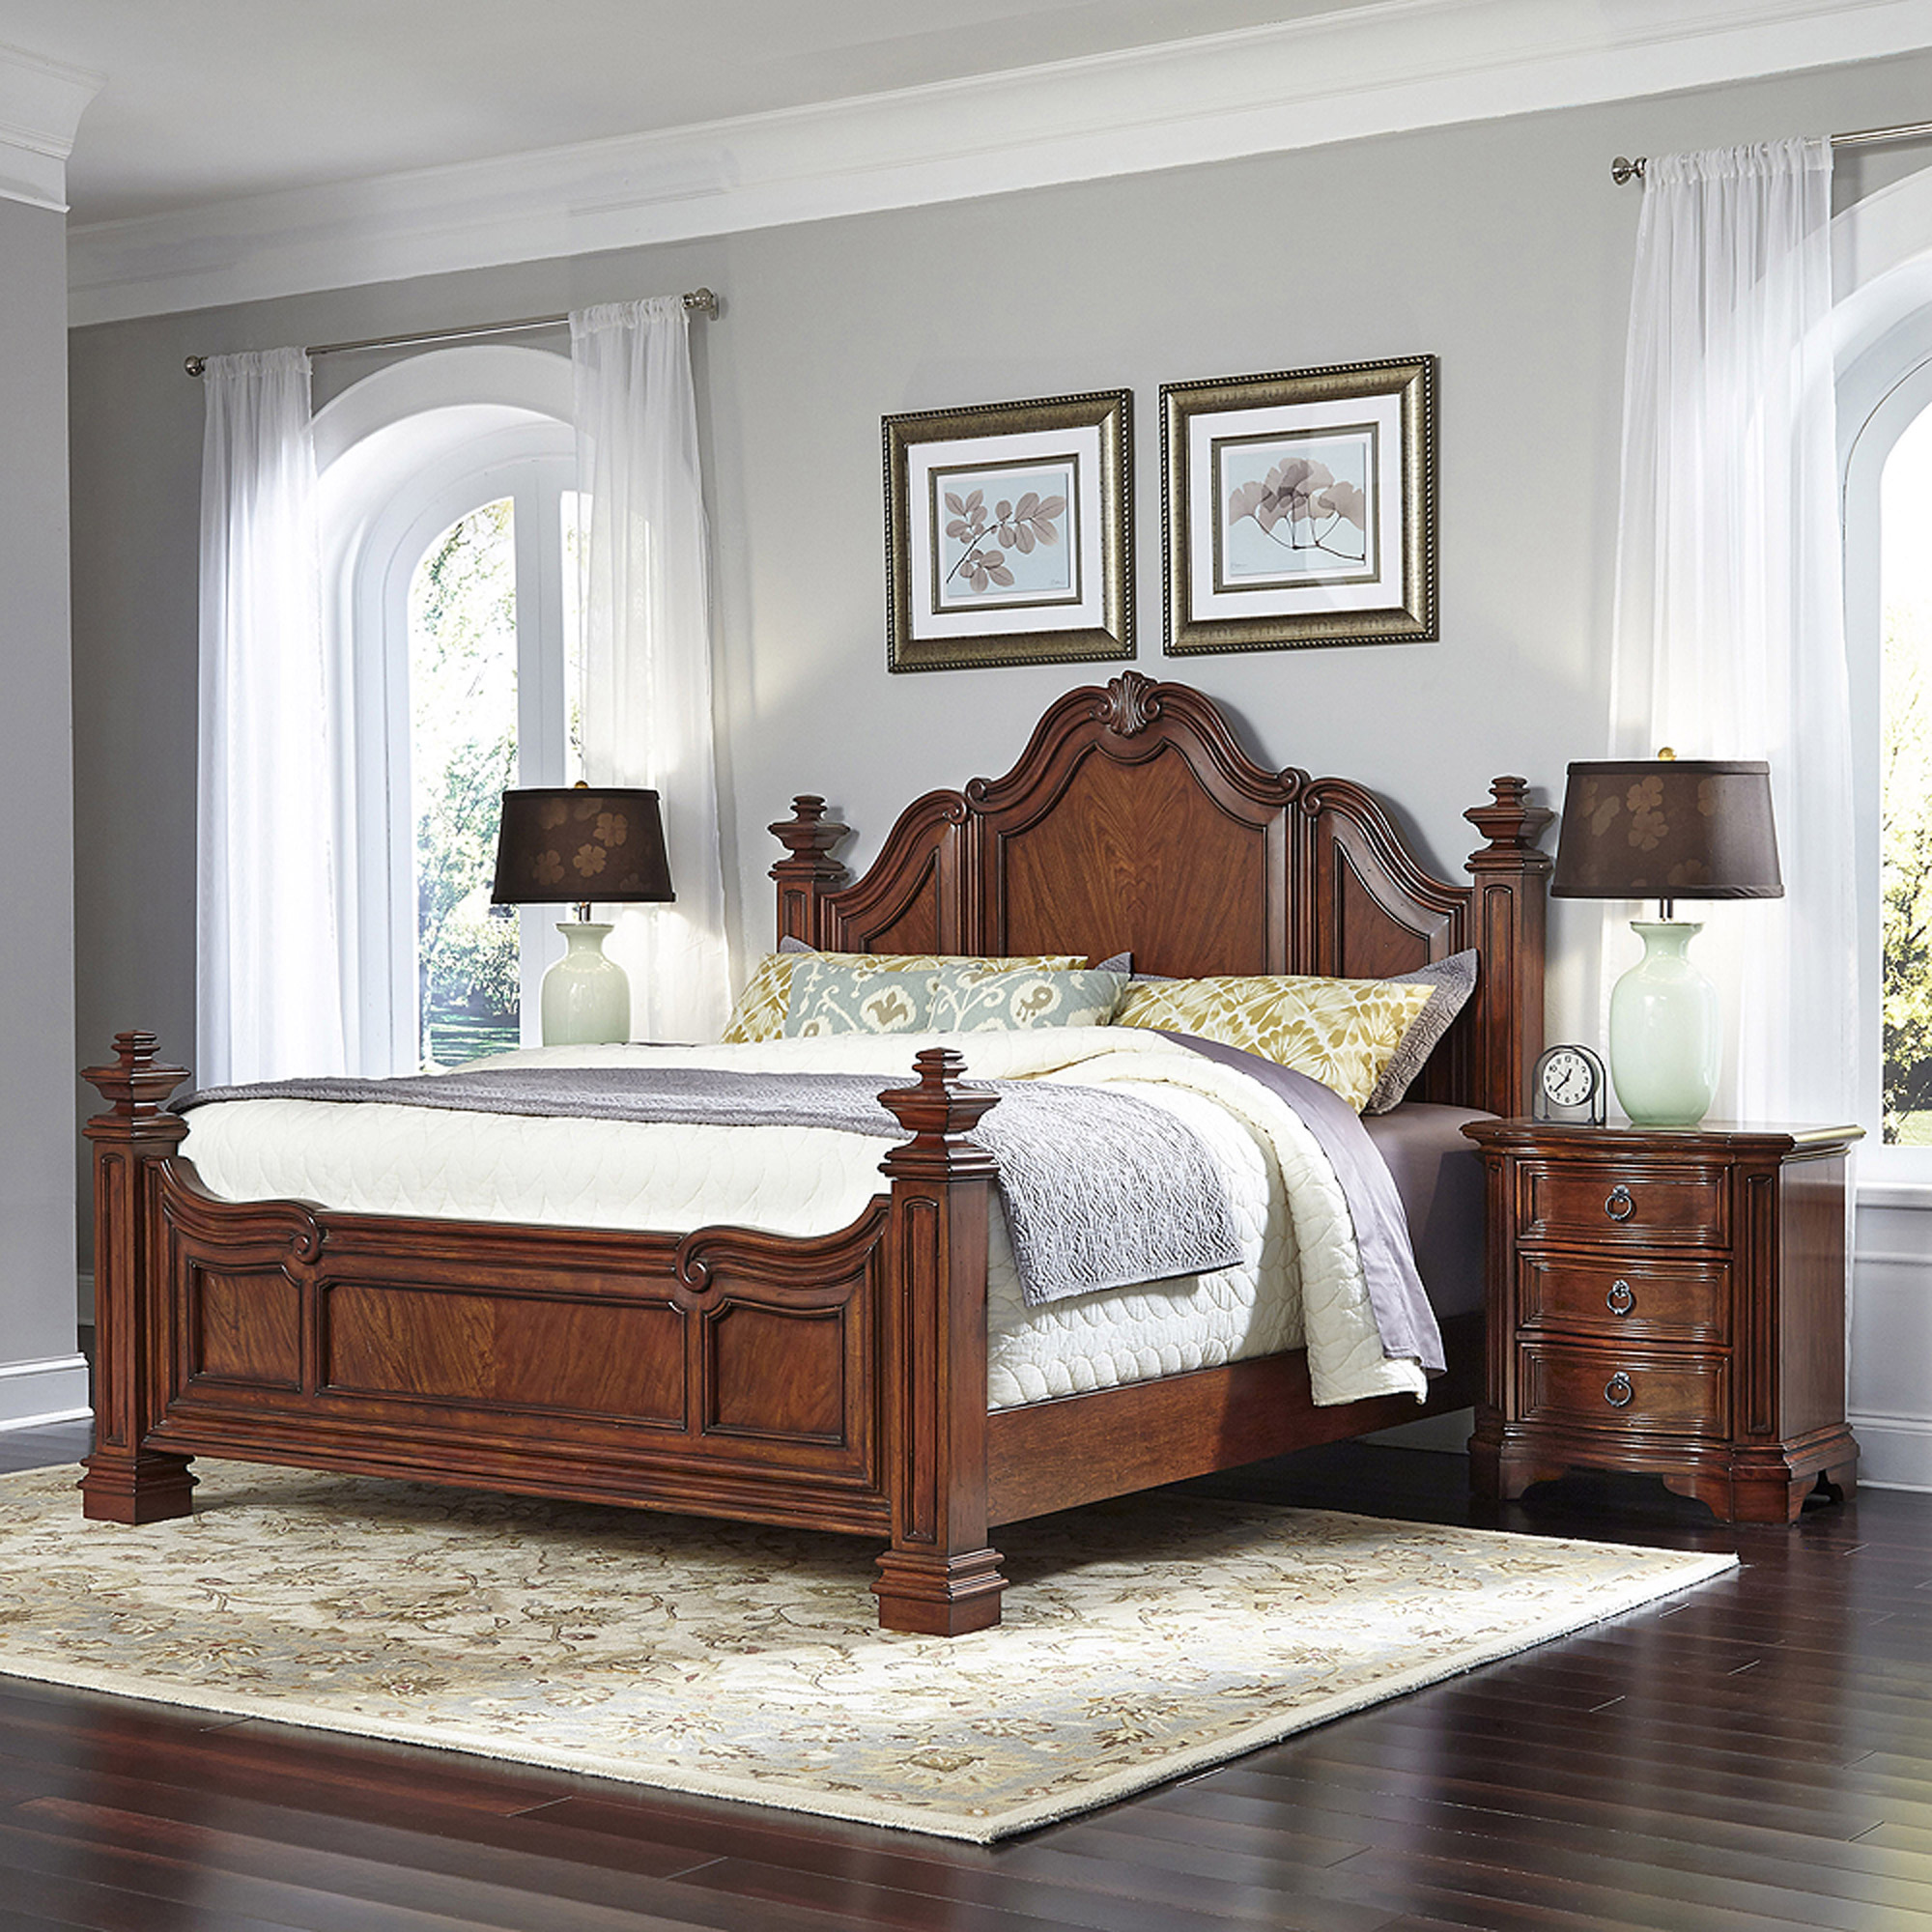 Home Styles Santiago King Bed and 2 Night Stands